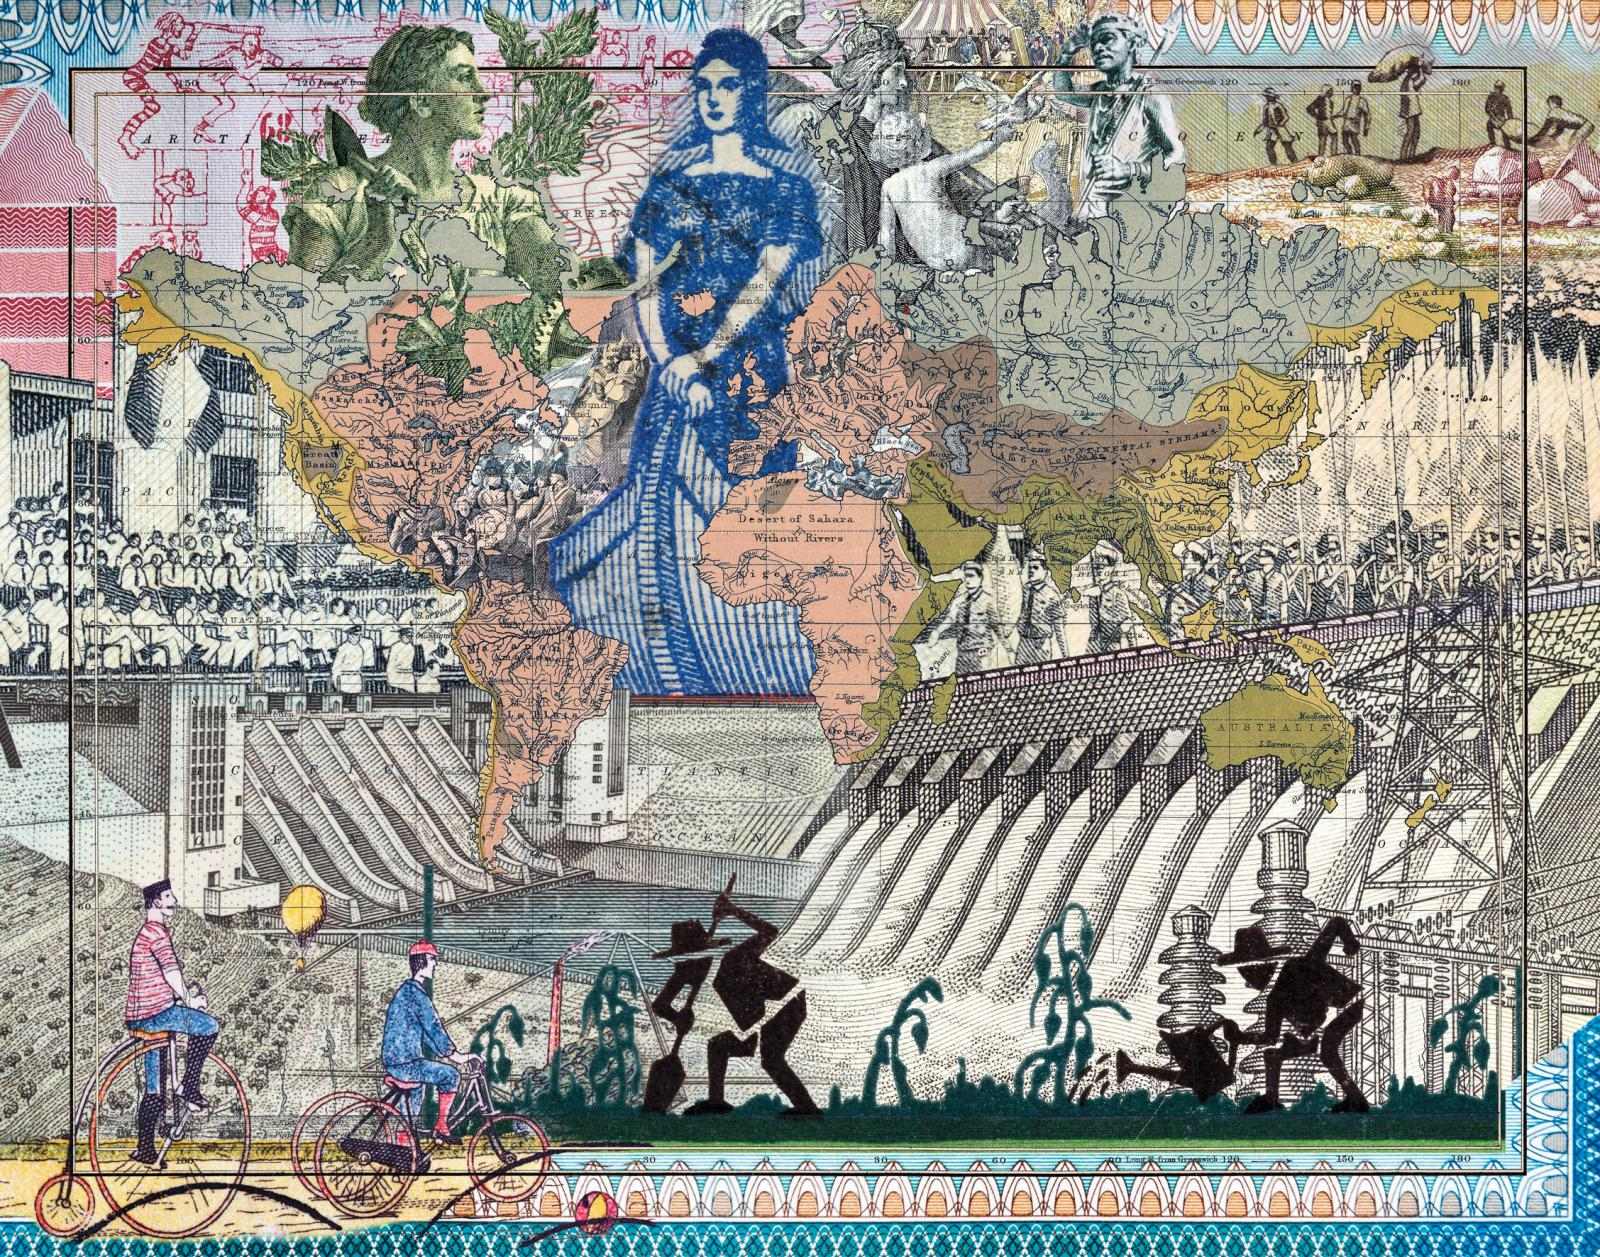 Malala Andrialavidrazana (née en 1971), Figures 1852, River Systems of the World, 2018, tirage pigmentaire, 110 x 158 cm.